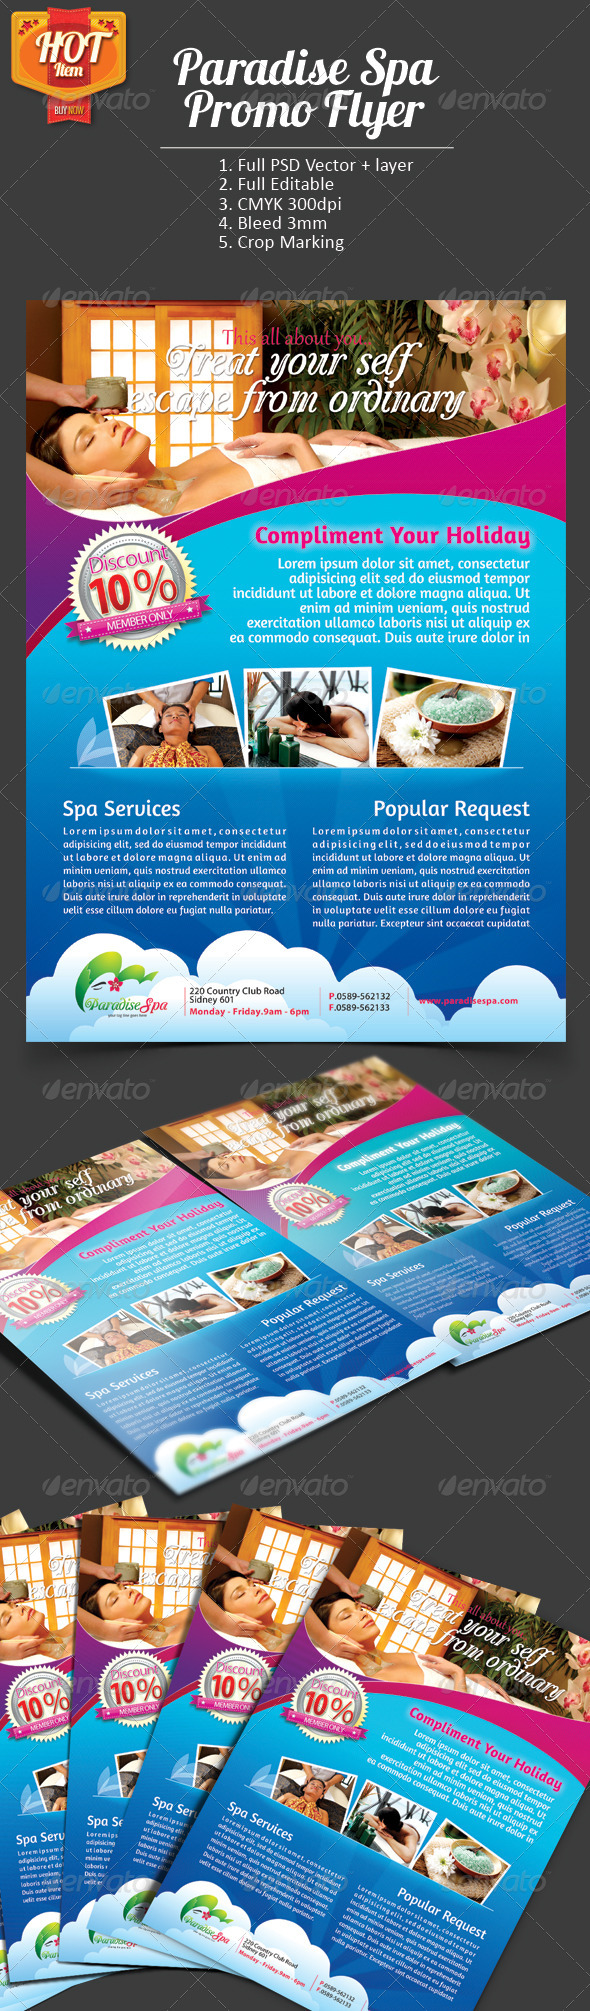 Paradise Spa Promo Flyer - Commerce Flyers